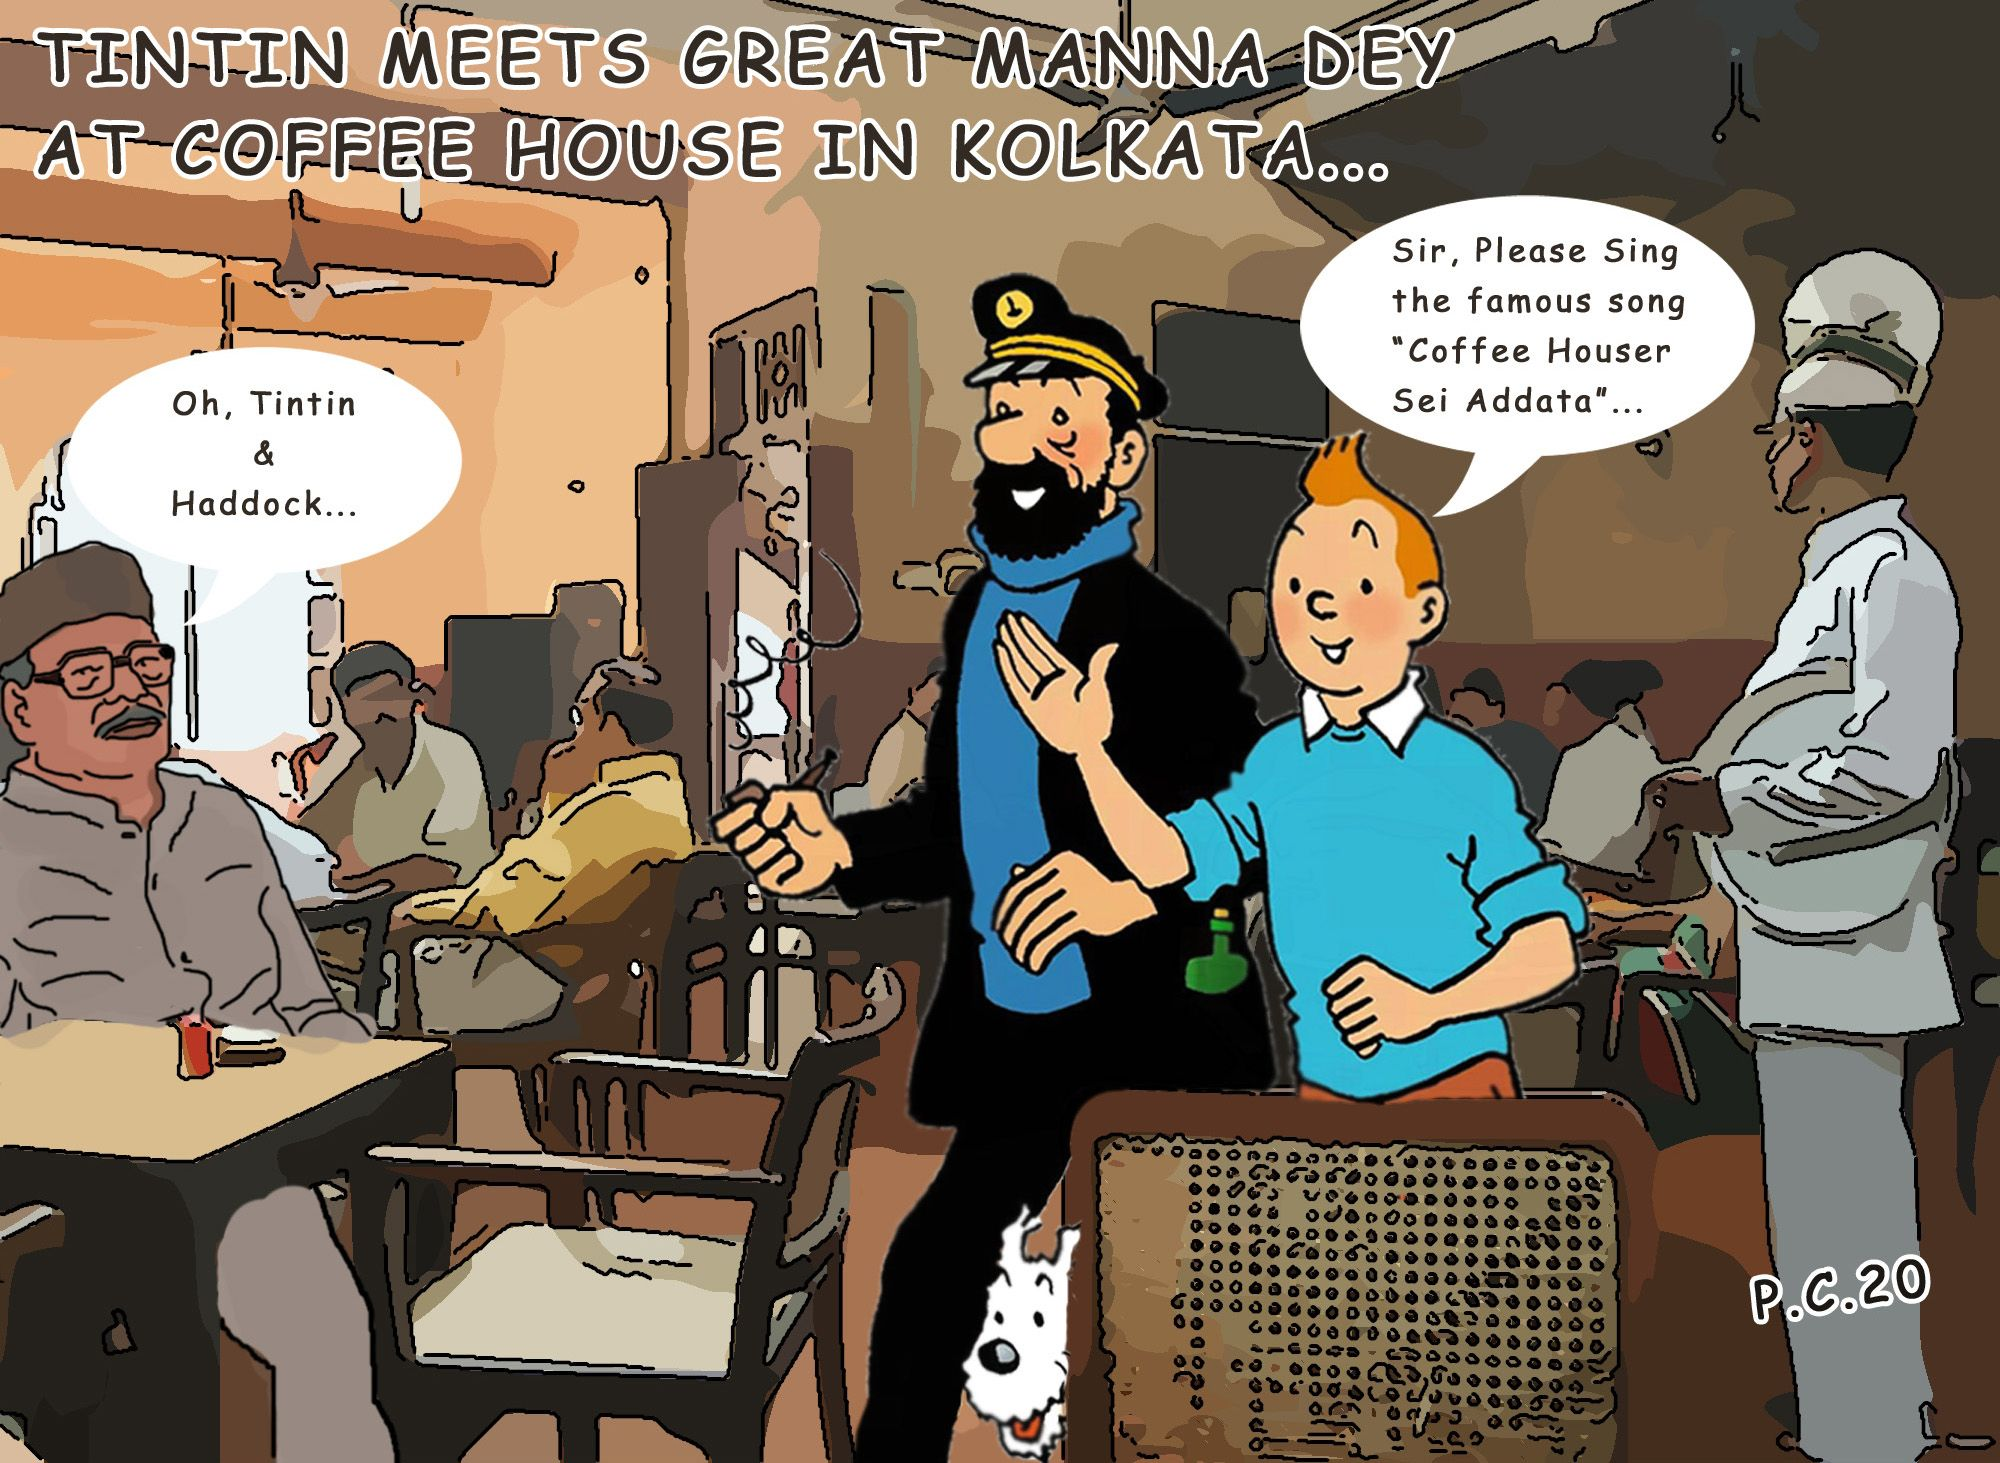 Tintin at Coffee House in Kolkata with Manna Dey in 2020